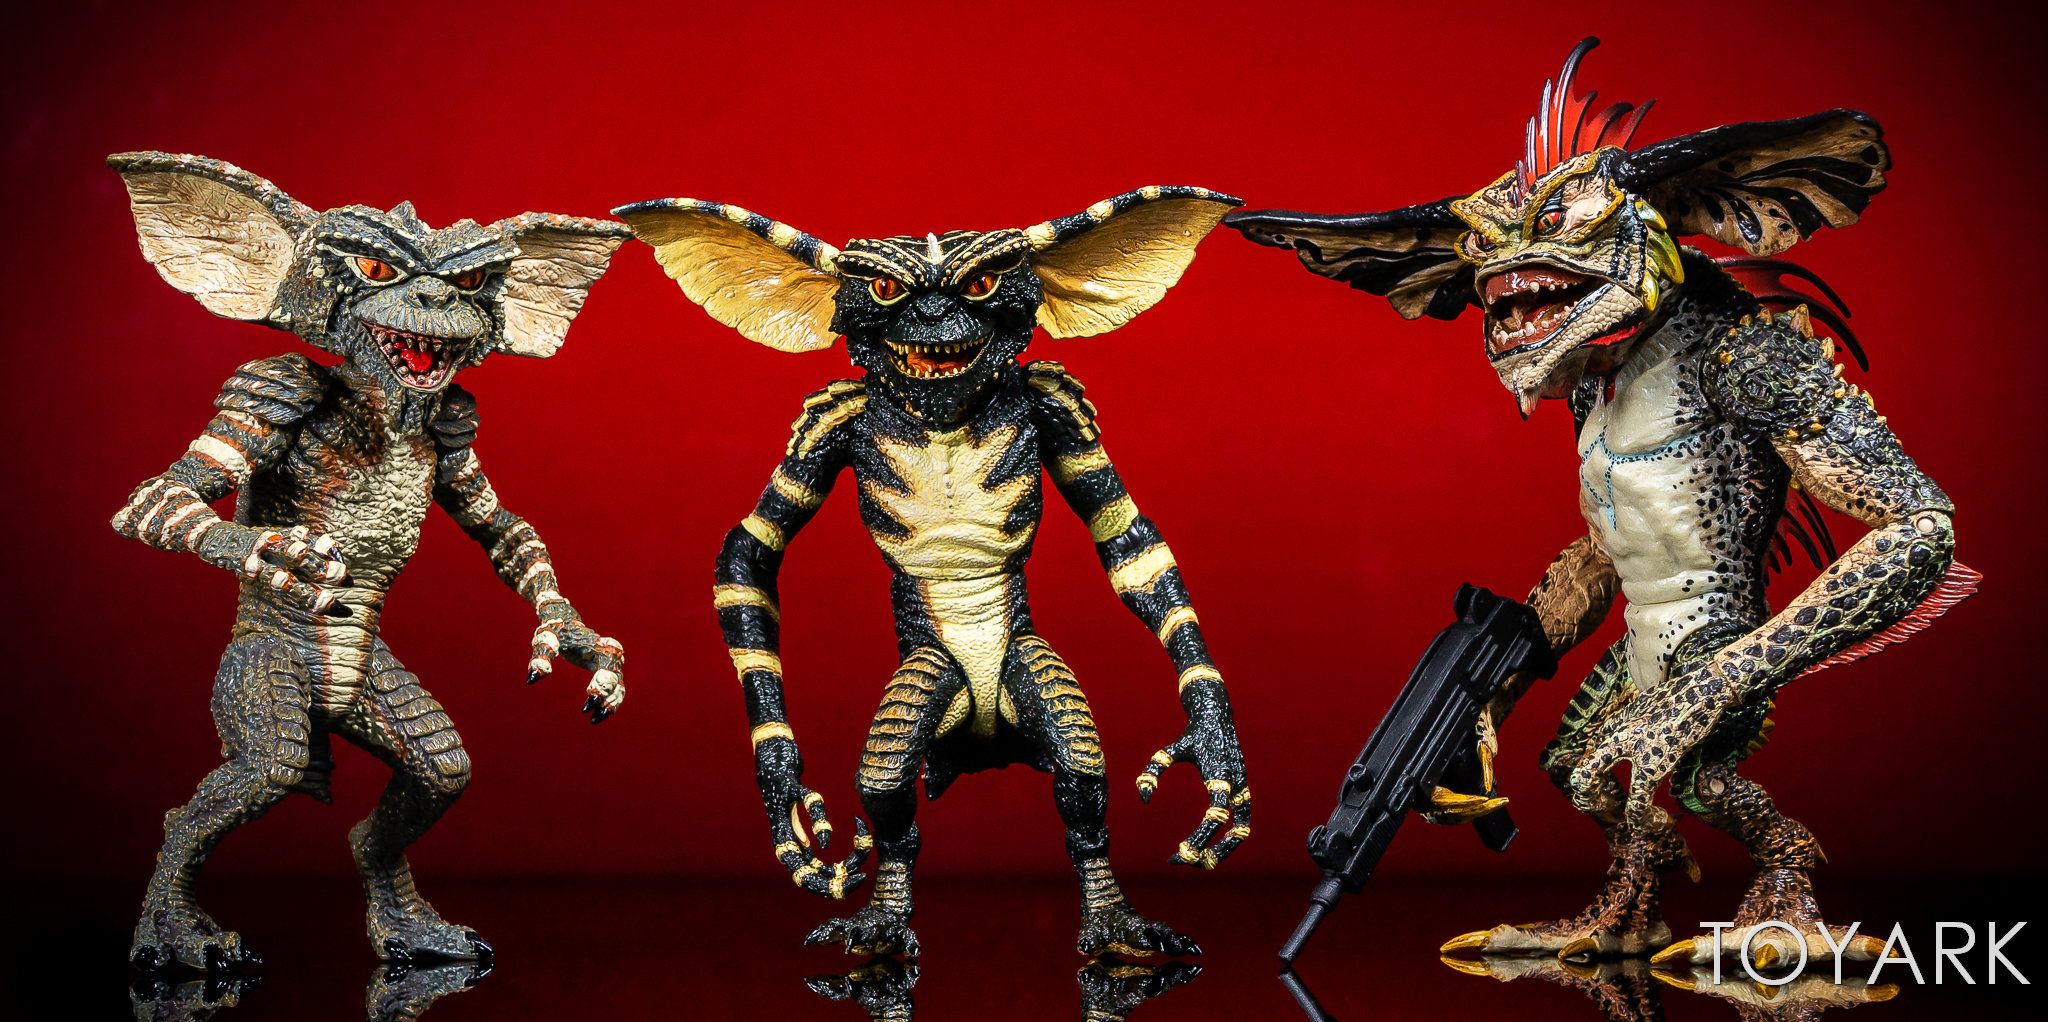 https://news.toyark.com/wp-content/uploads/sites/4/2018/11/Ultimate-NECA-Gremlin-Figure-015.jpg